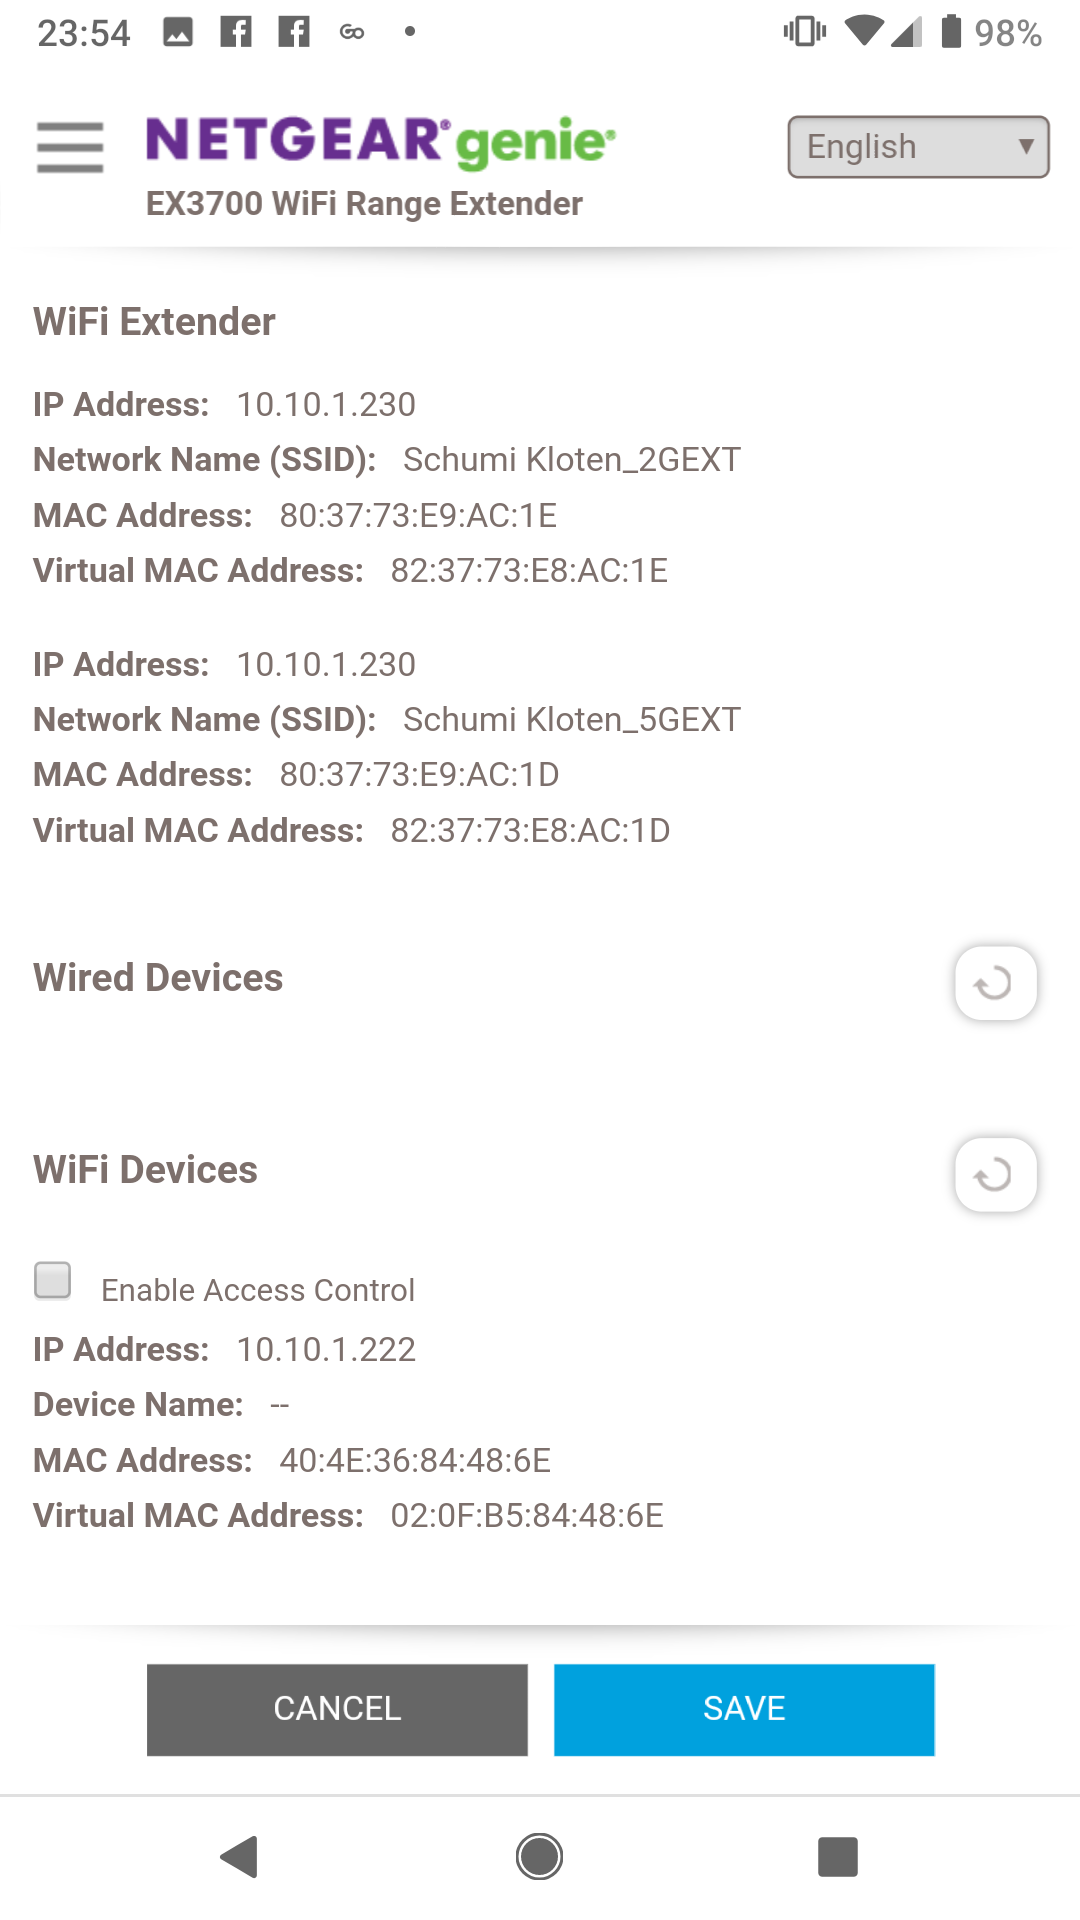 Solved: Re: Mystery IP Address in device map - NETGEAR Communities on ip route map, ip subnet map, port map, address locator map, ipv6 map, show my ip map, internet map, dns map, google map, network map, street address map, ddos attack map, find map, memory map, show address on map, ip viking map, gps coordinates map, name map, live ip map, proxy map,